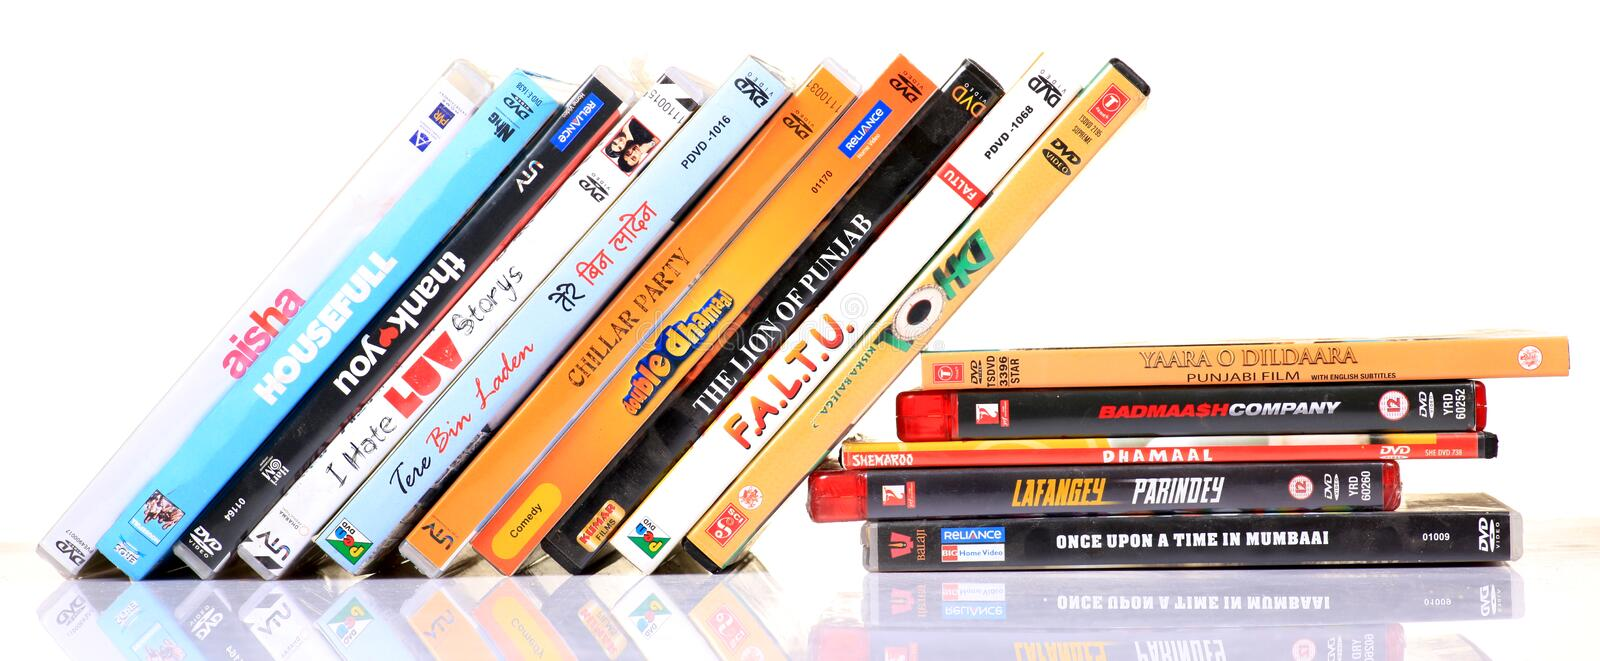 Hindi movies dvd's stock image